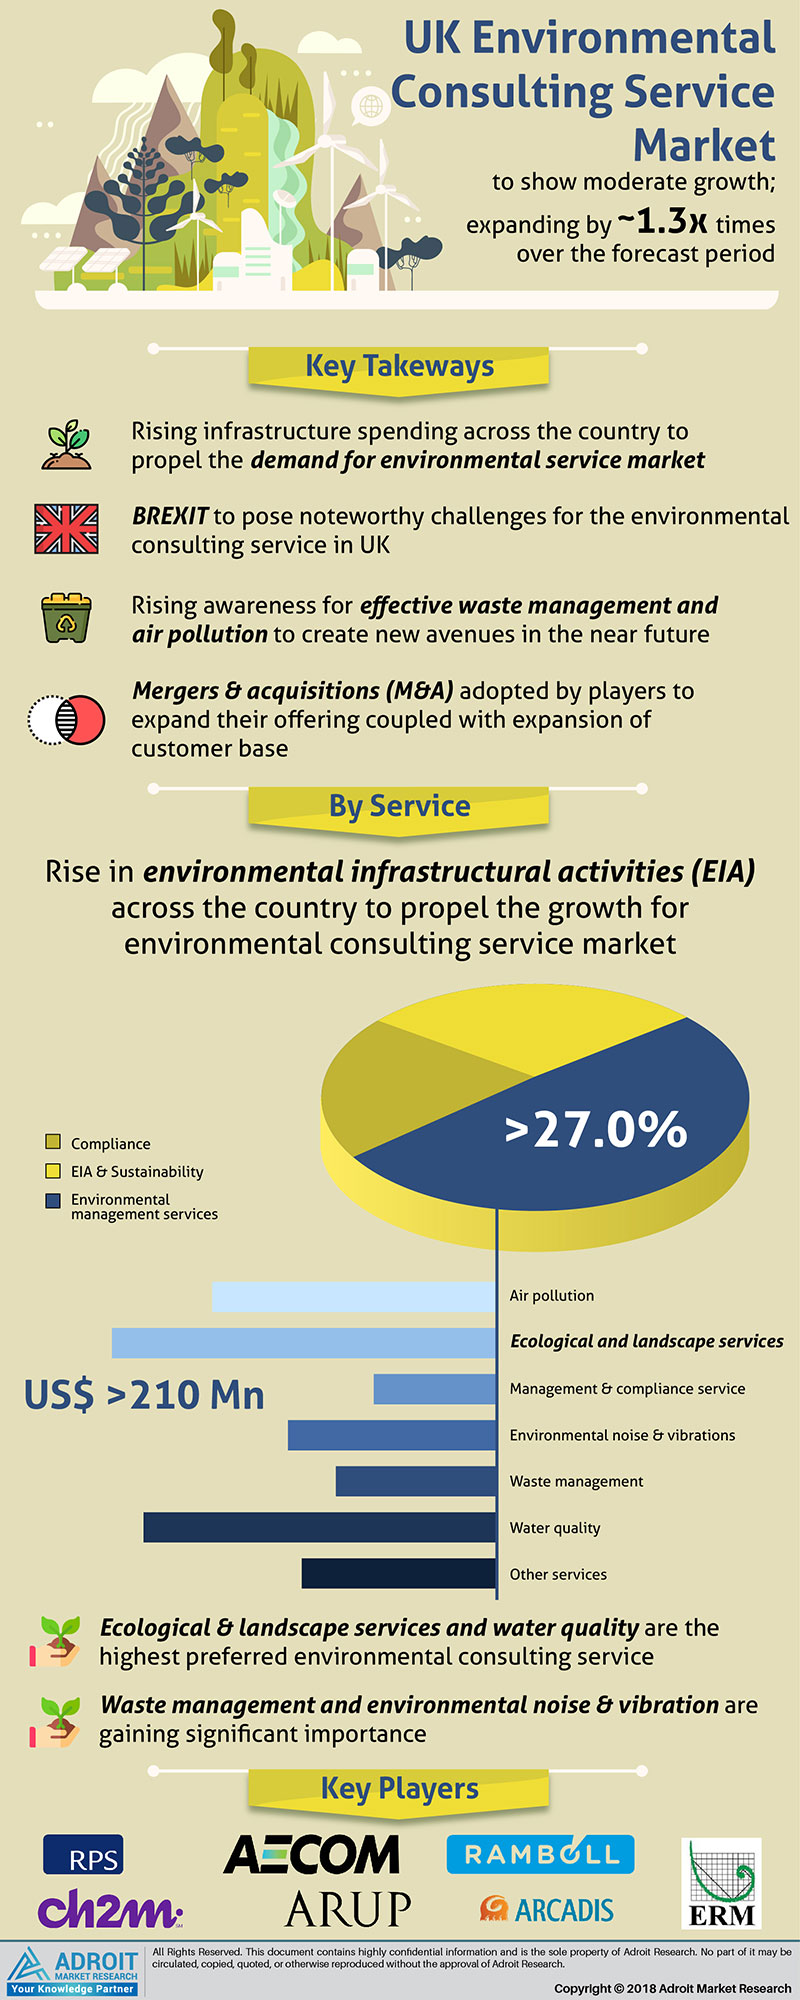 UK Environmental Consulting Services Market Size 2017 by Service, Application, Forecast 2018 to 2025